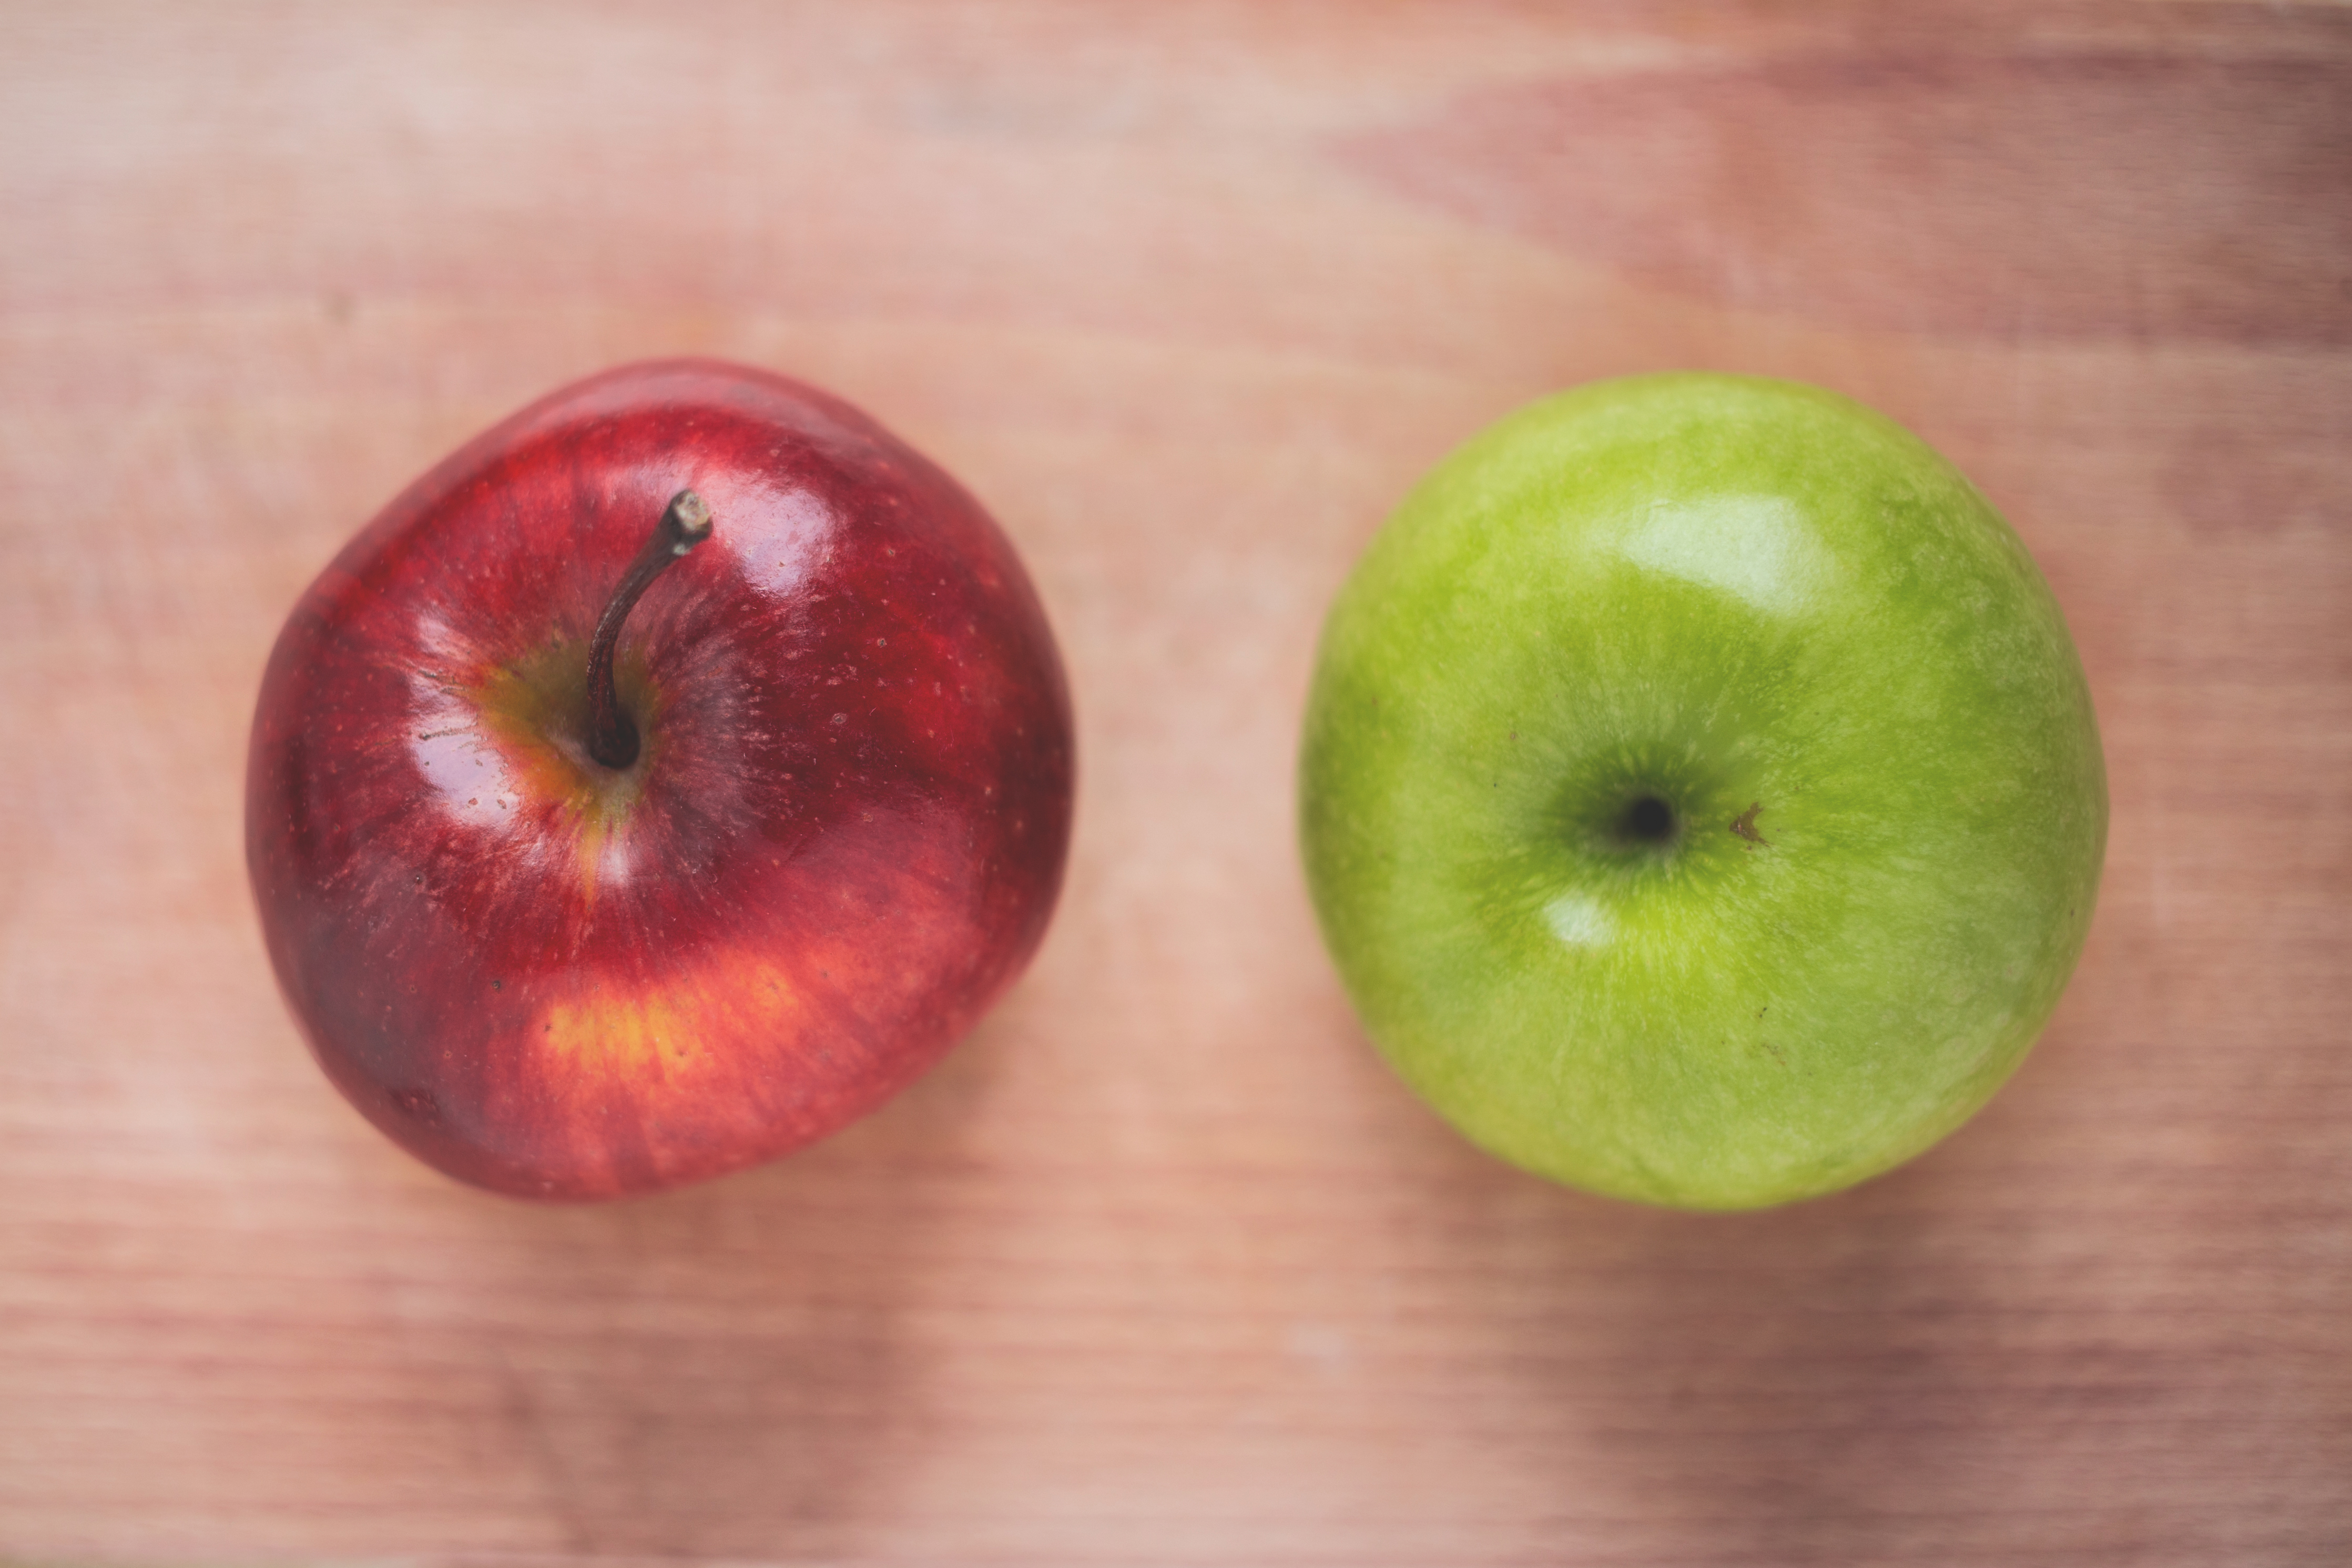 Red Apple With Two Green Apples 183 Free Stock Photo